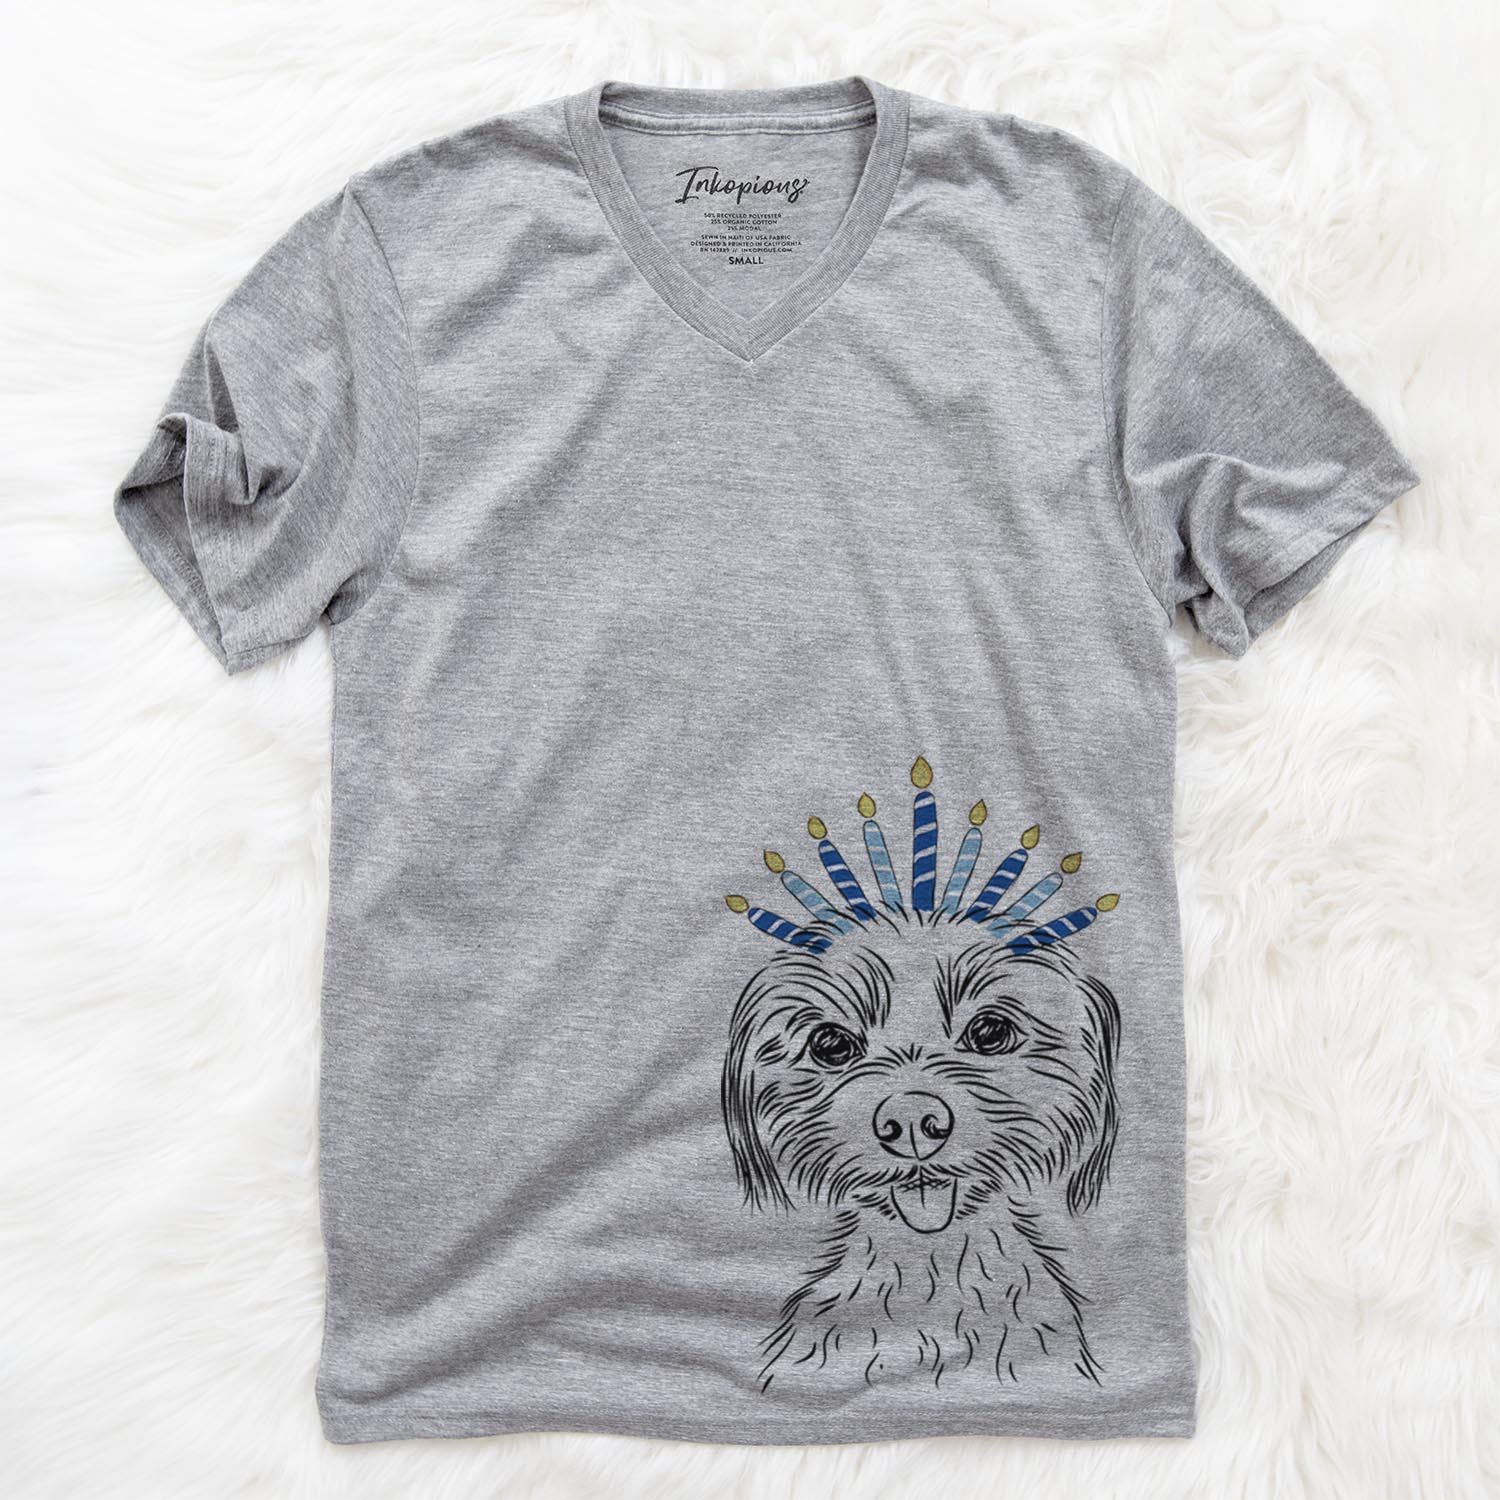 Mater the Yorkshire Terrier  - Hanukkah Collection